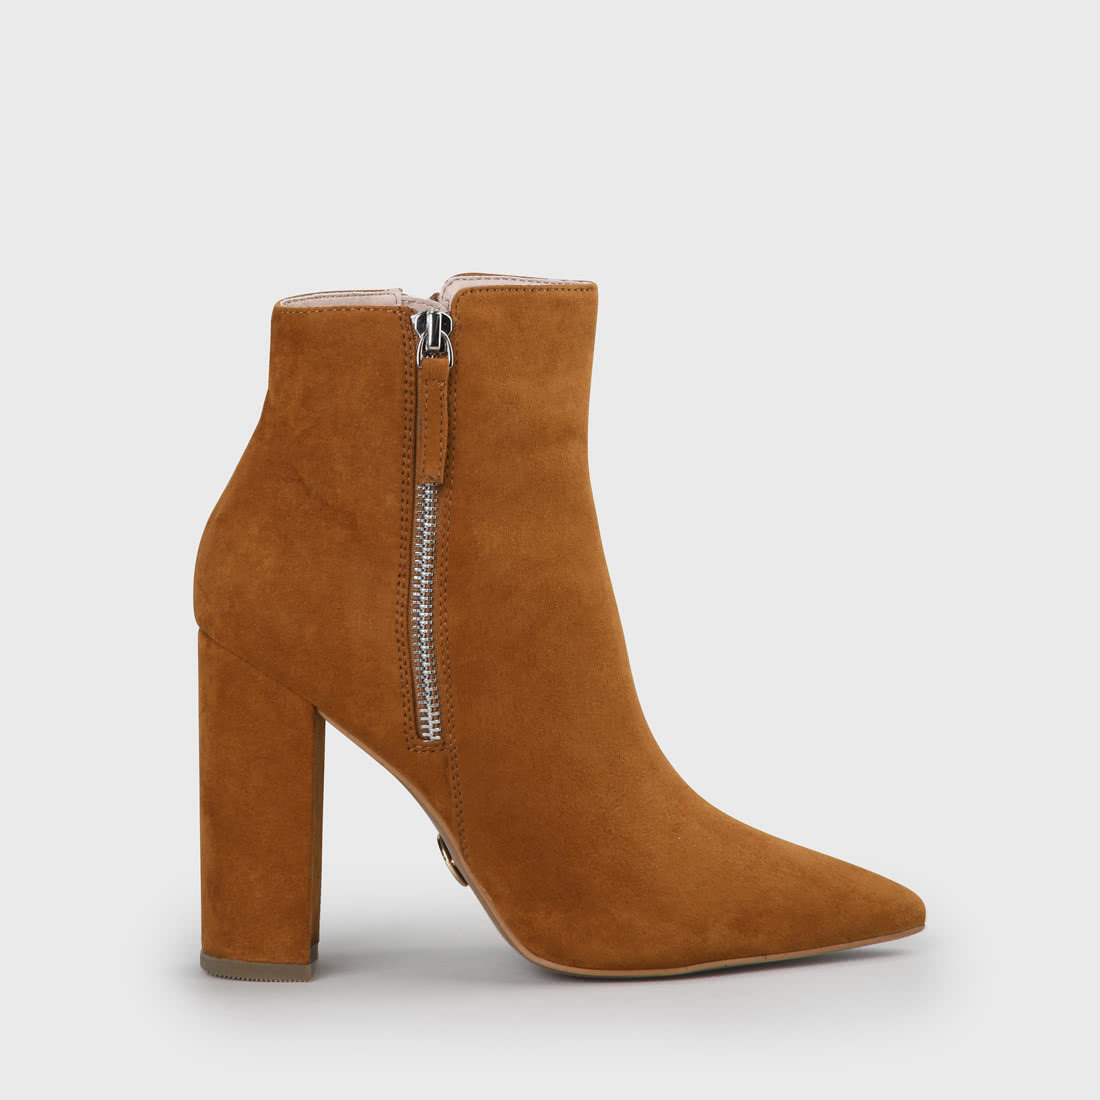 online for sale promo codes 50% off Fermin Ankle Boot camel suede look